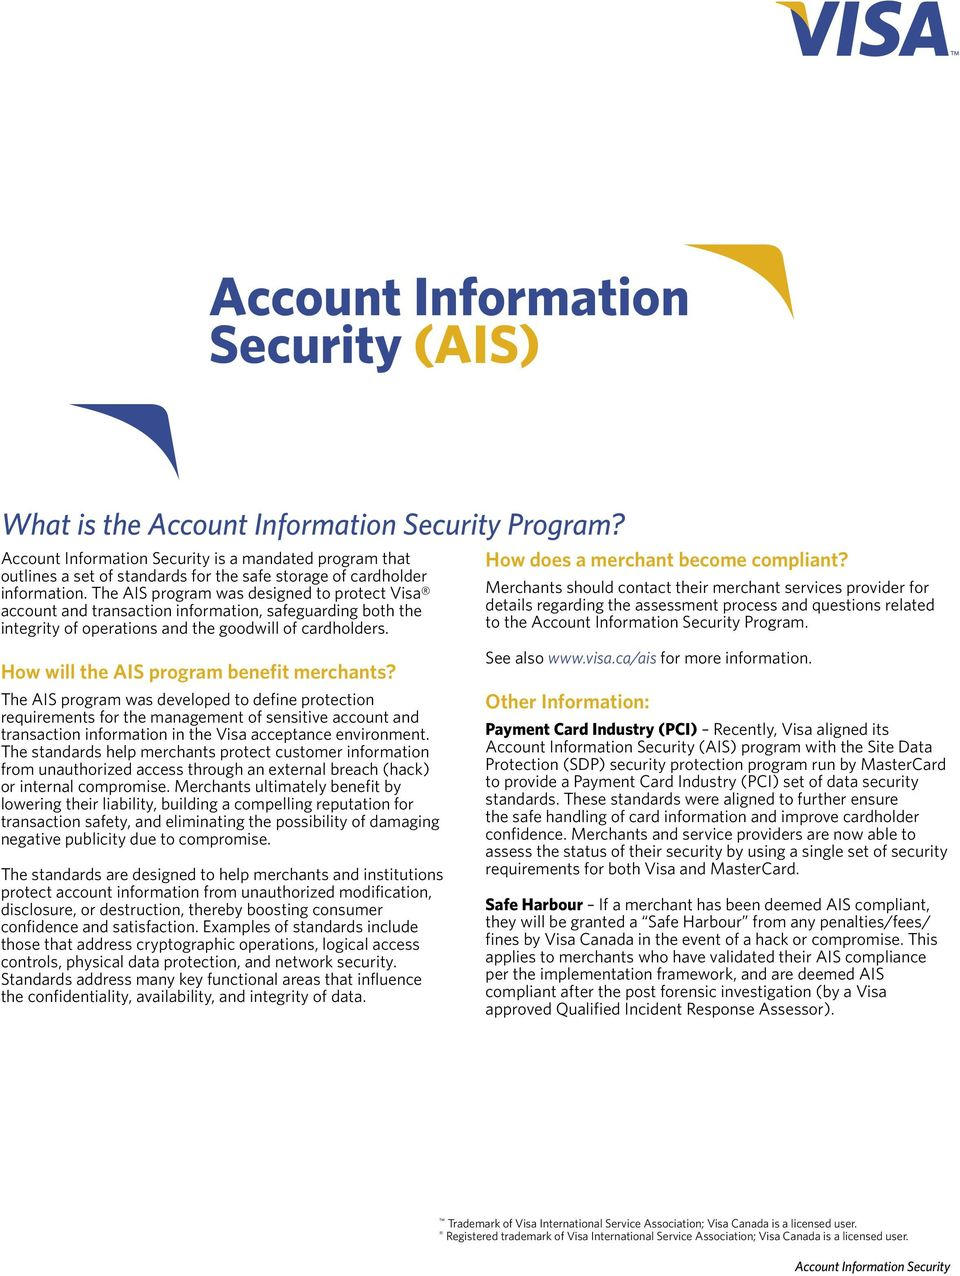 The AIS program was designed to protect Visa account and transaction information, safeguarding both the integrity of operations and the goodwill of cardholders. How does a merchant become compliant?